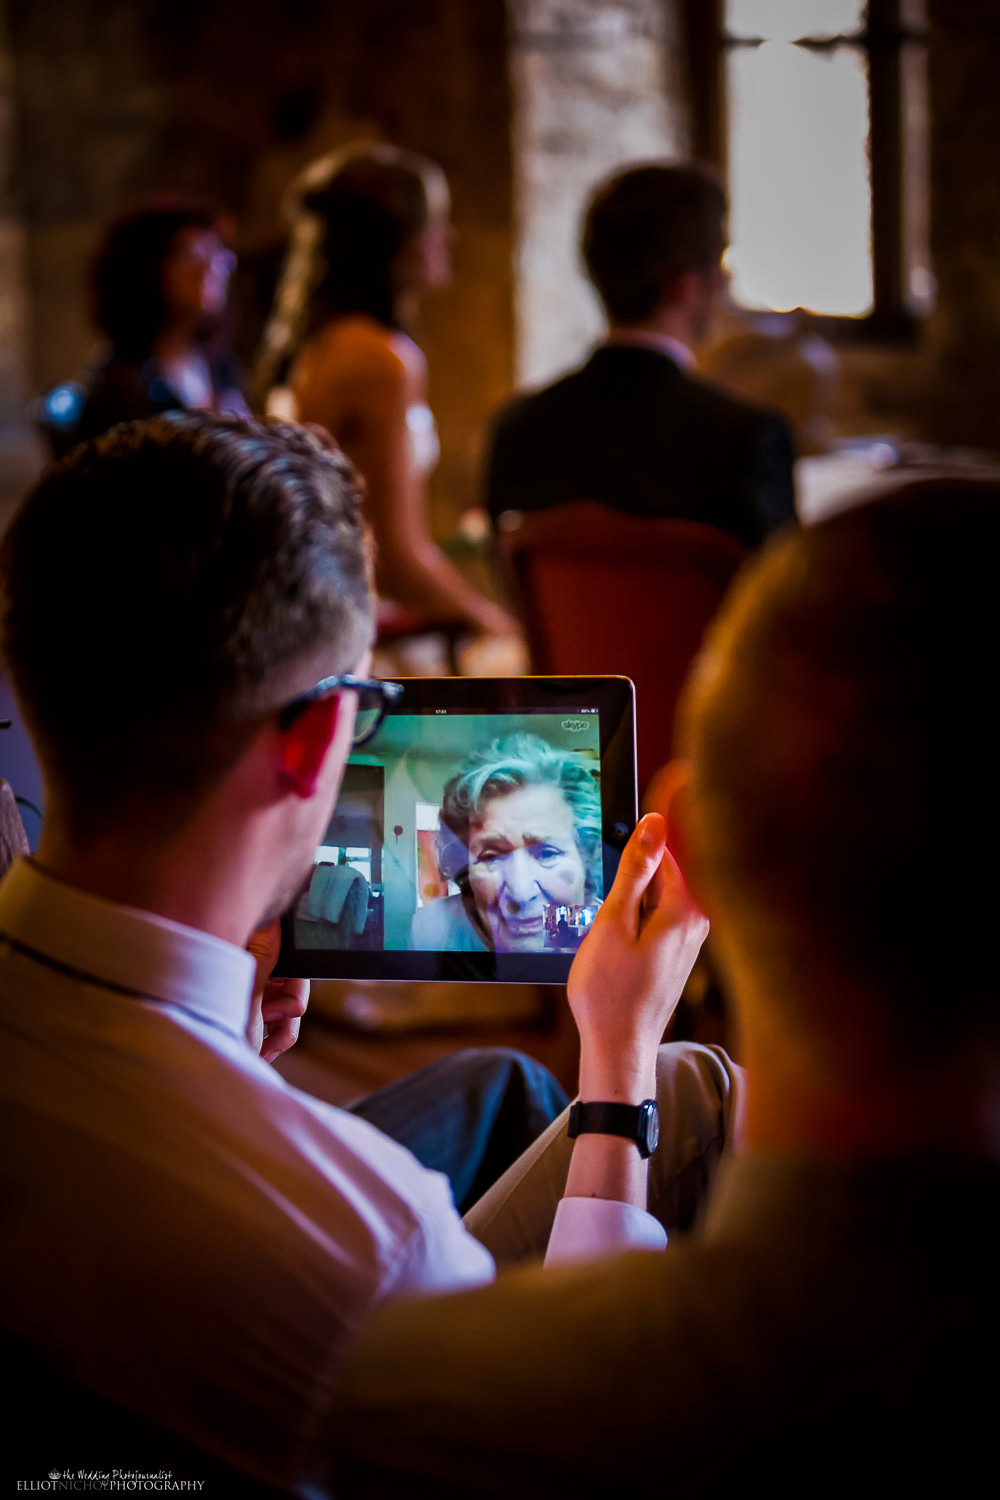 Grandparent able to watch the destination wedding ceremony in Sicily via Skype on an iPad.